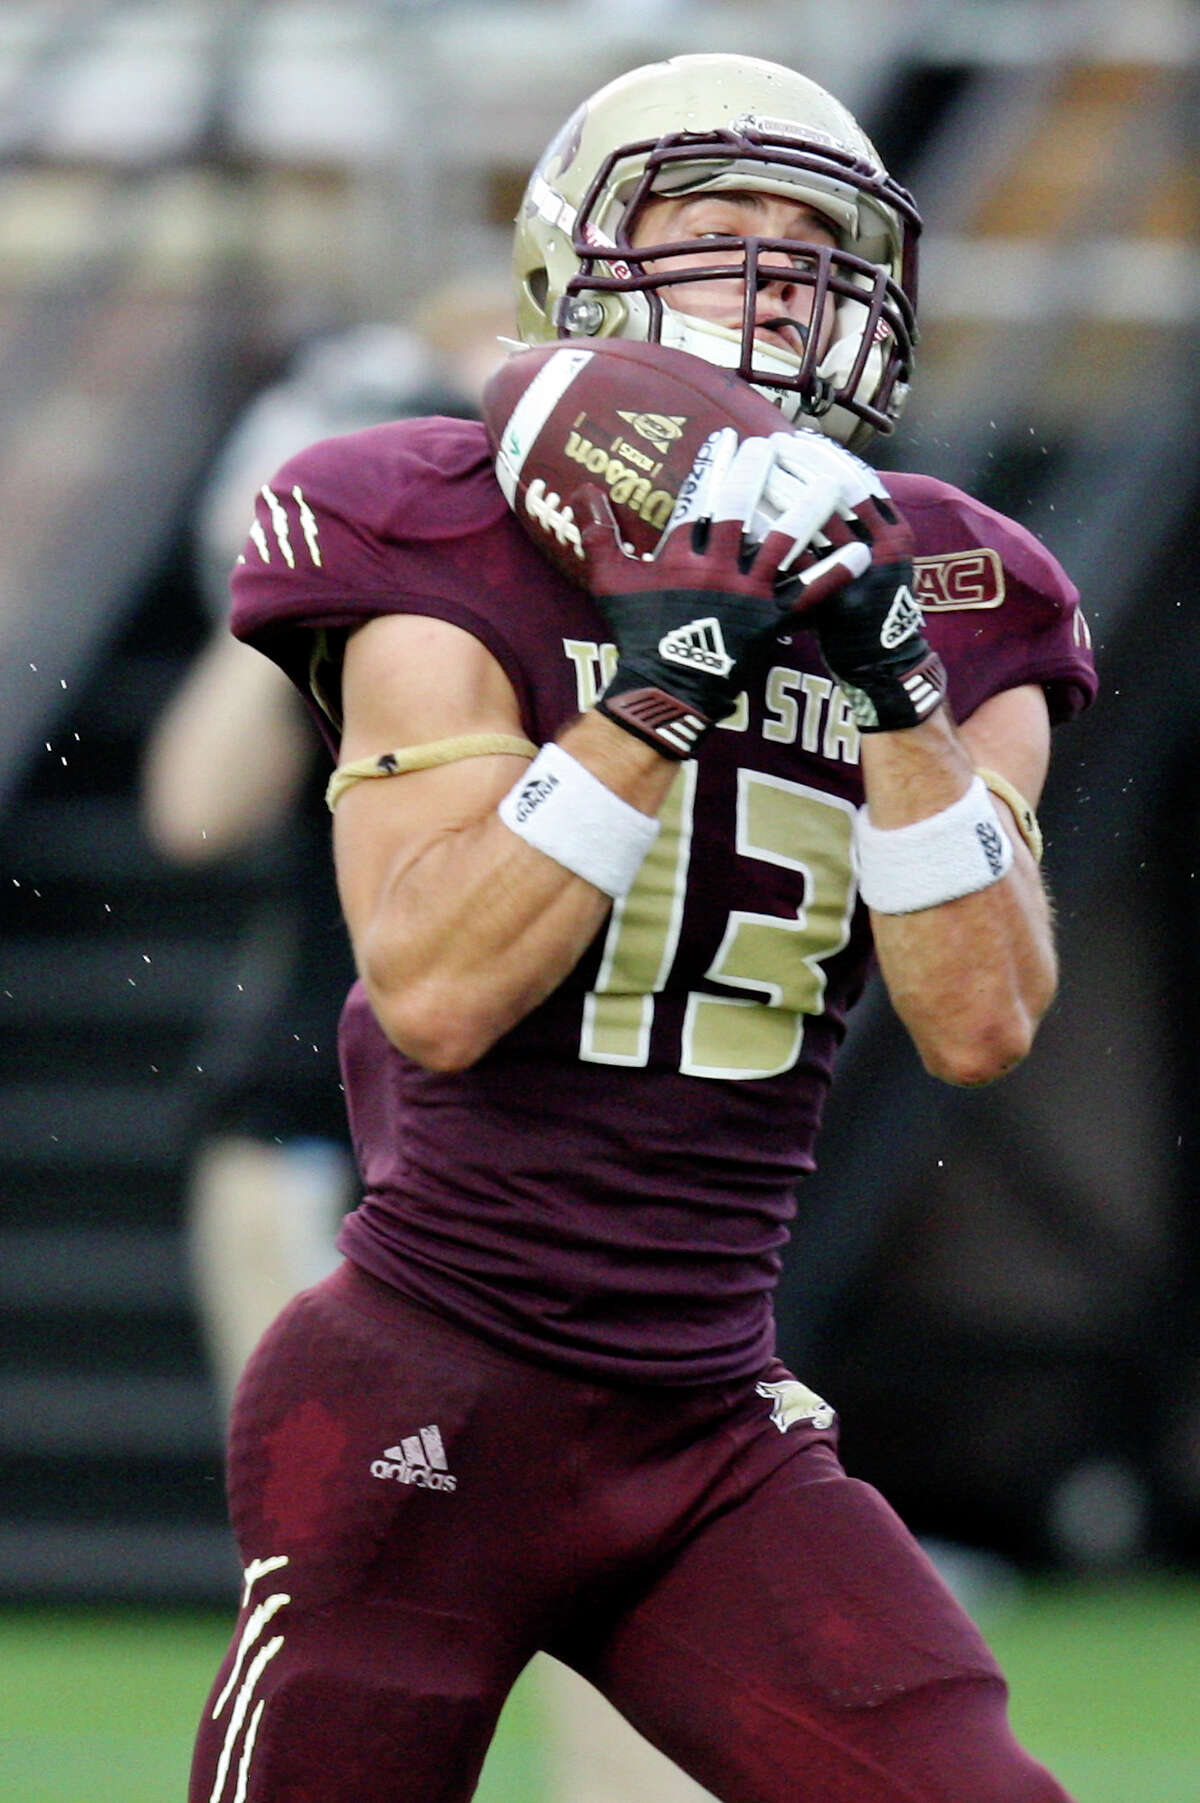 Texas State Bobcats' Andy Erickson catches a pass during first half action against the Idaho Vandals Saturday Oct. 13, 2012 at Bobcat Stadium in San Marcos, Tx. Erickson scored a touchdown on the play.